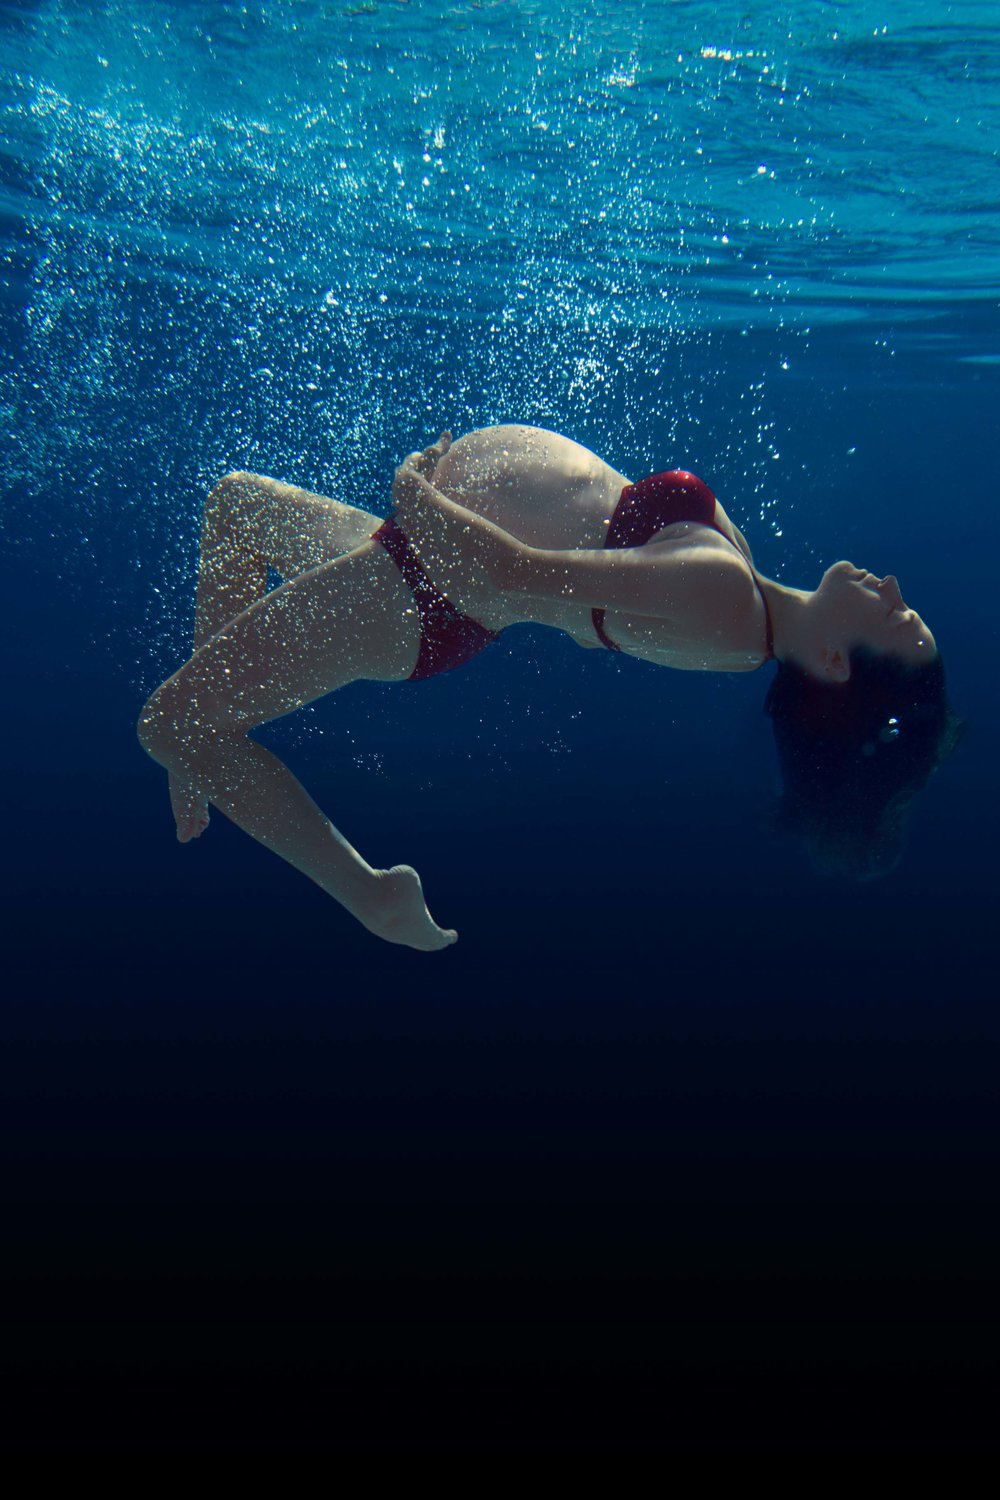 Underwater Maternity session submerged pregnancy photos underwater by Ramona Nicolae Photography underwater photography